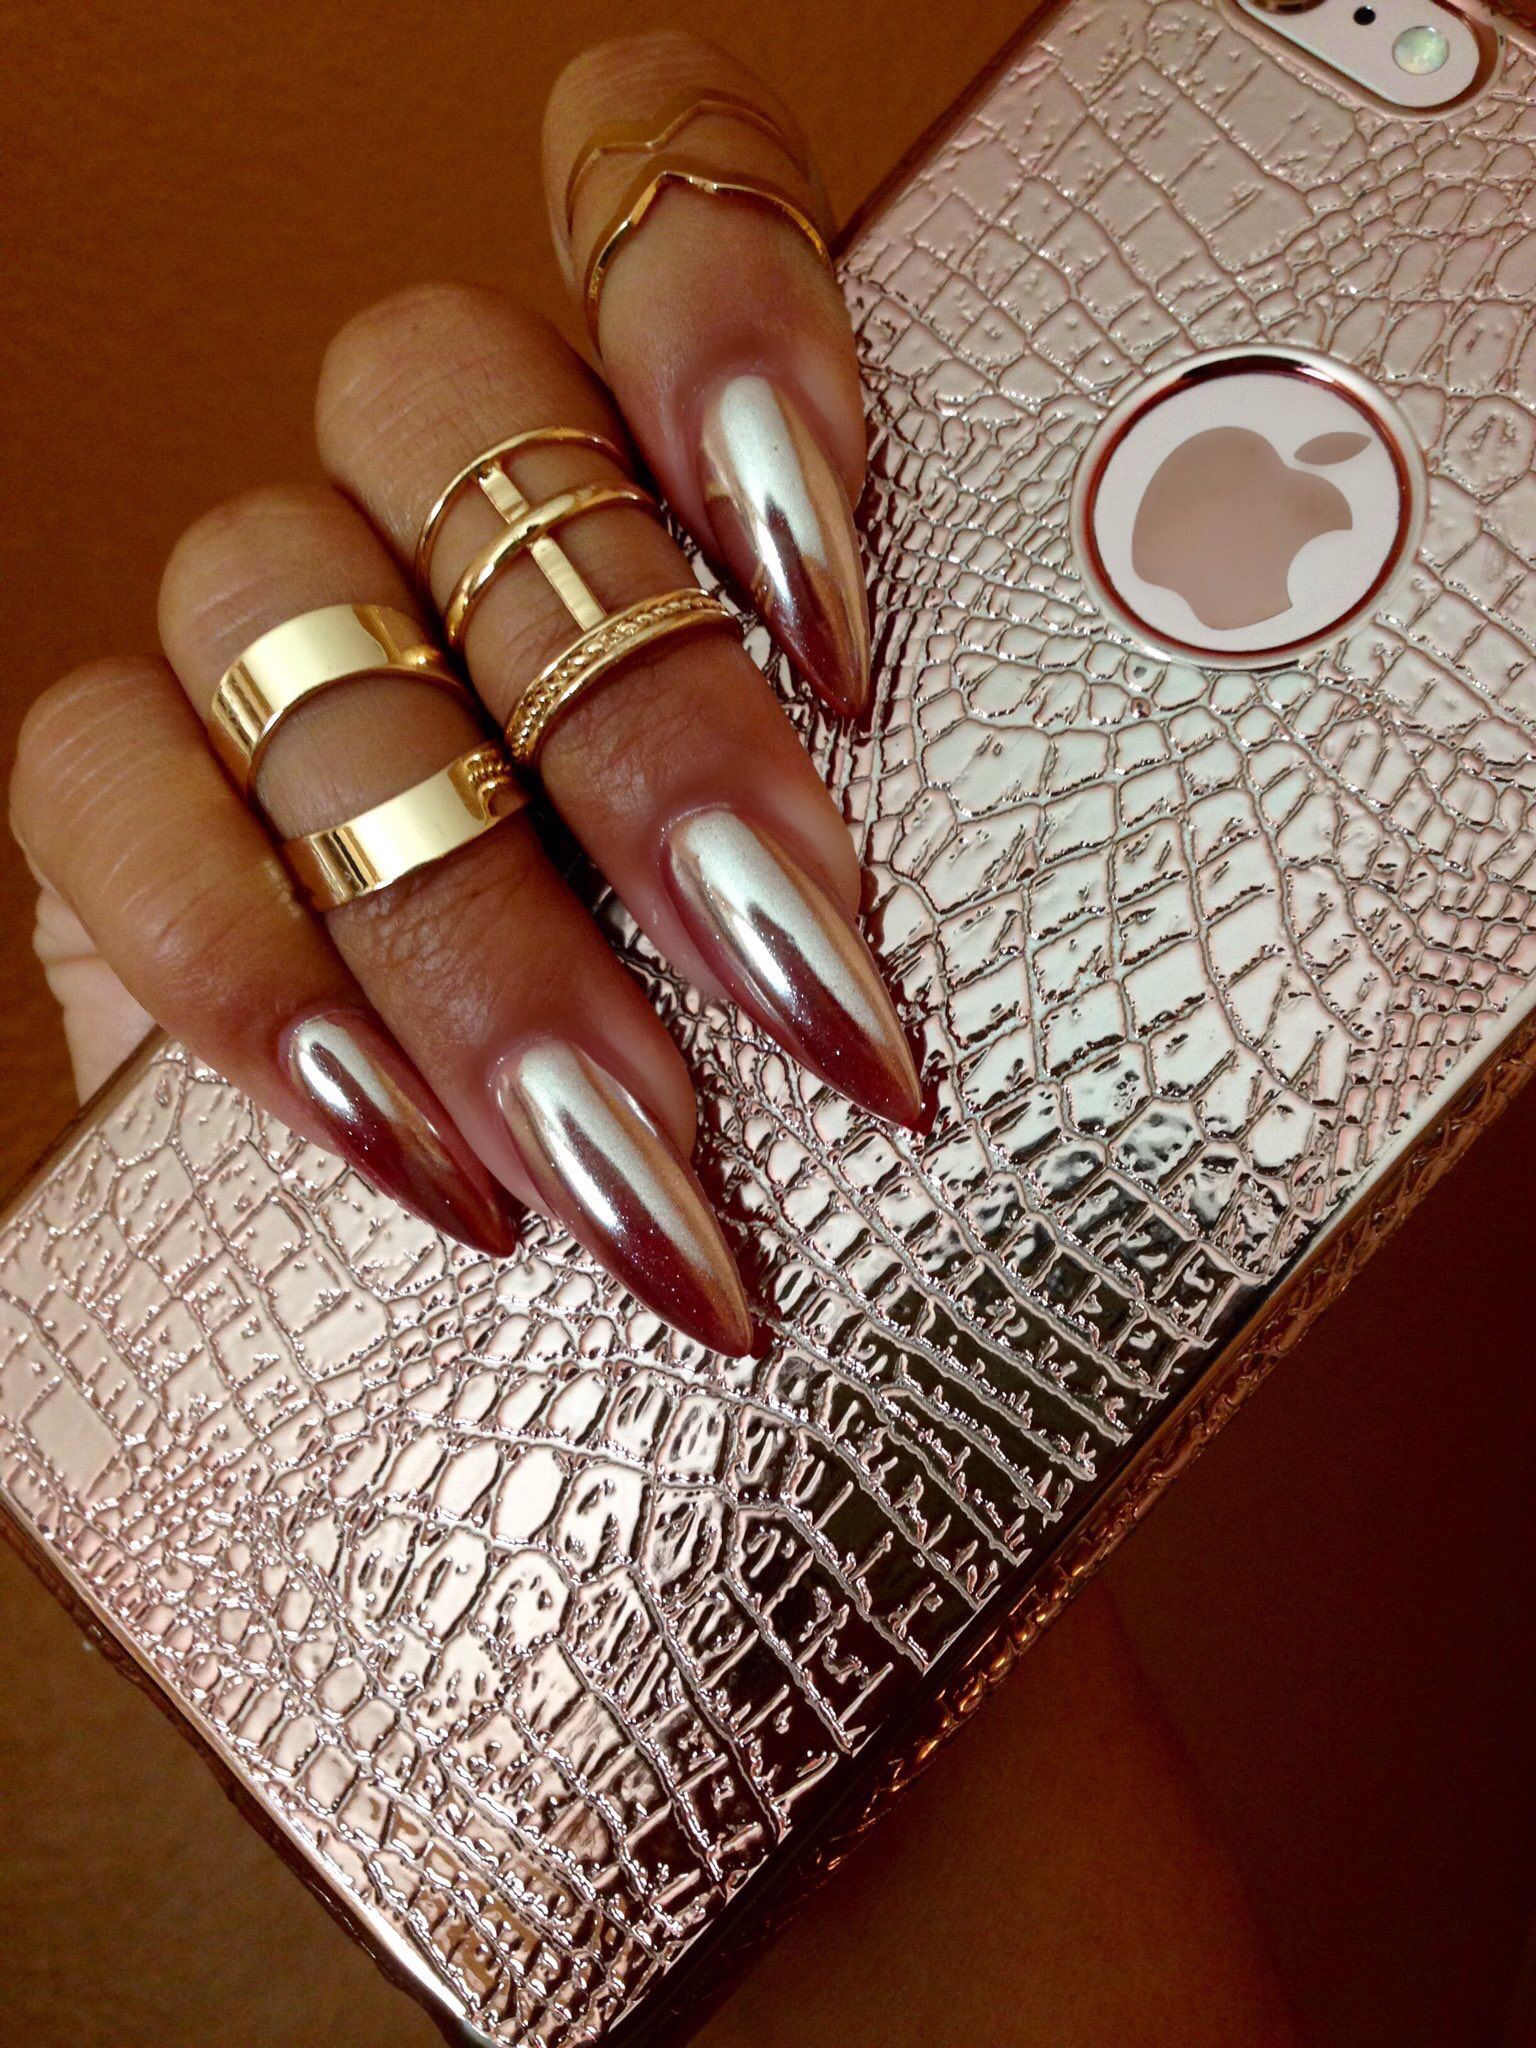 Chrome Nails! New nail trend | Makeup | Pinterest | Chrome nails ...